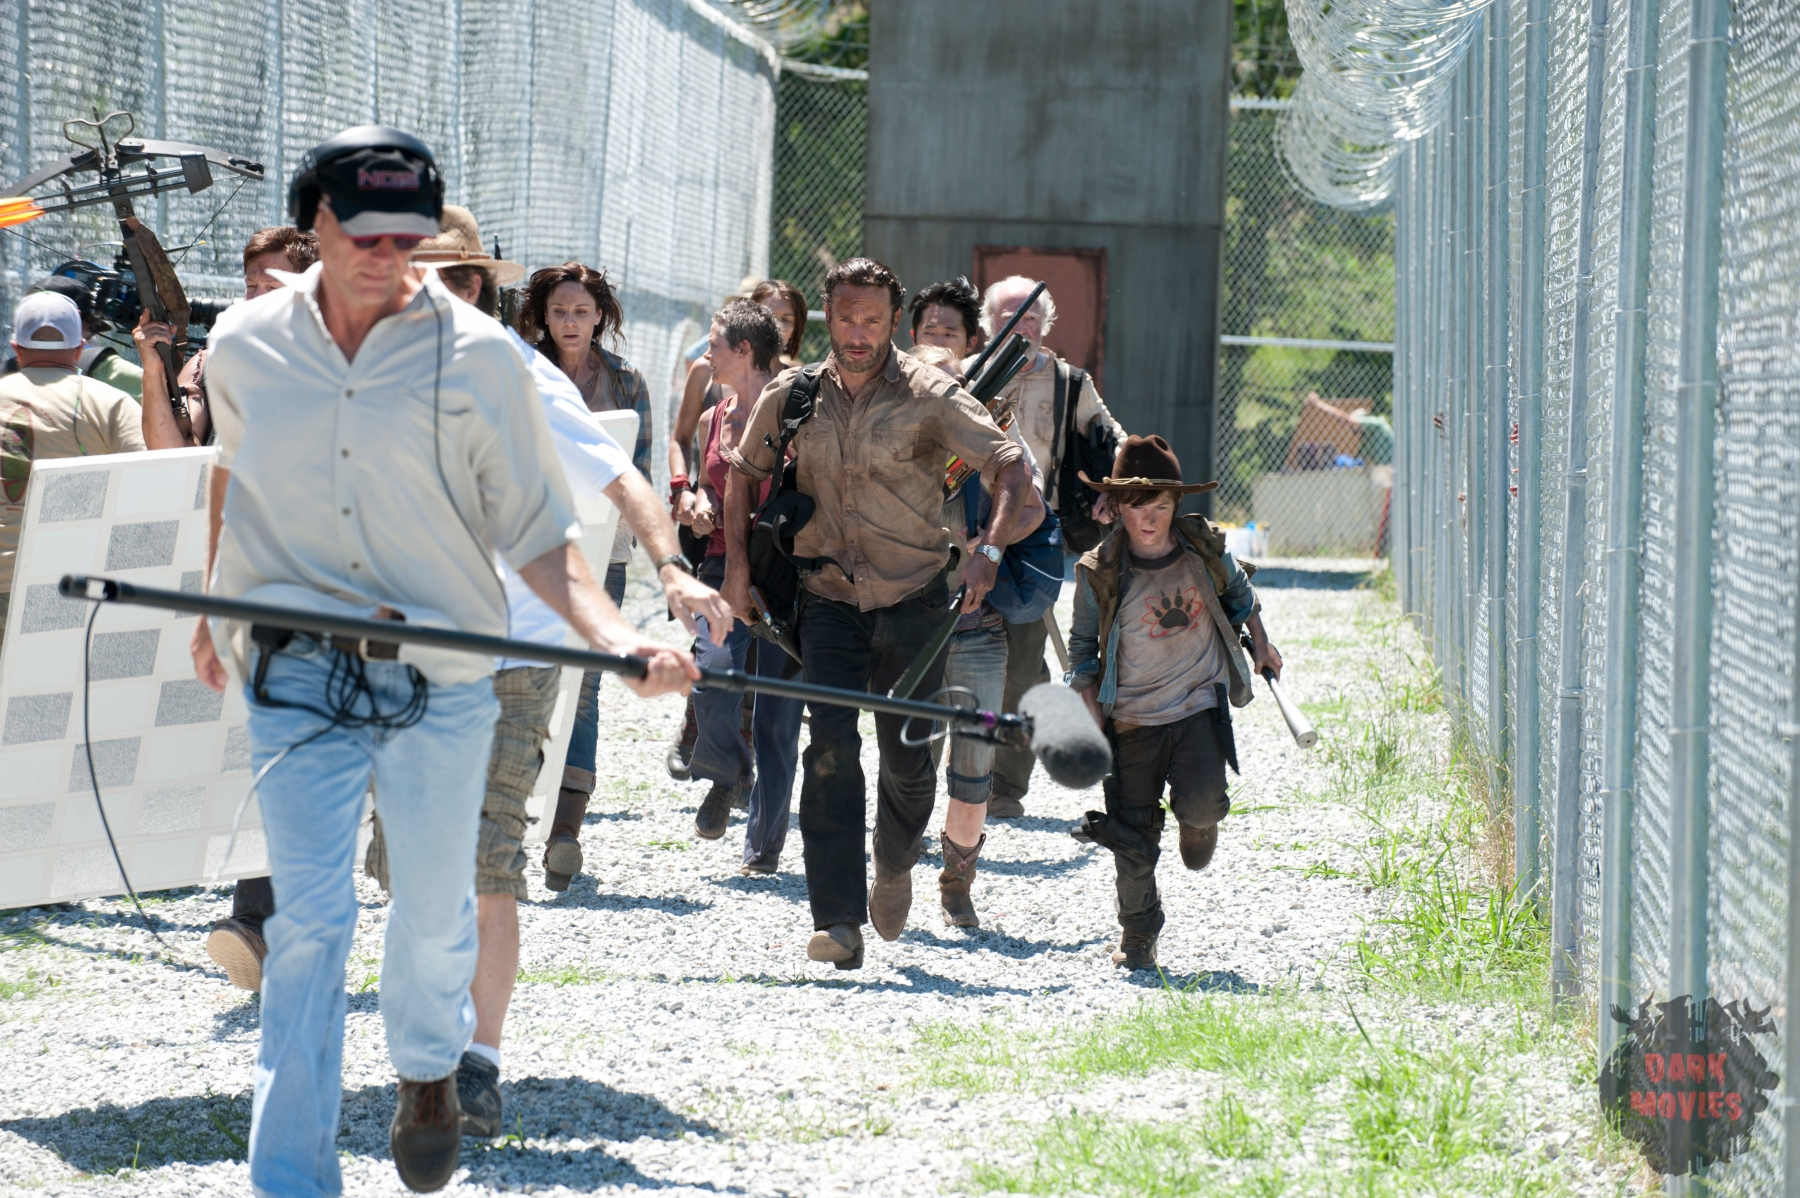 (L-R) Lori Grimes (Sarah Wayne Callies), Rick Grimes (Andrew Lincoln) and Carl Grimes (Chandler Riggs) - The Walking Dead - Season 3, Episode 1 - Photo Credit: Gene Page/AMC